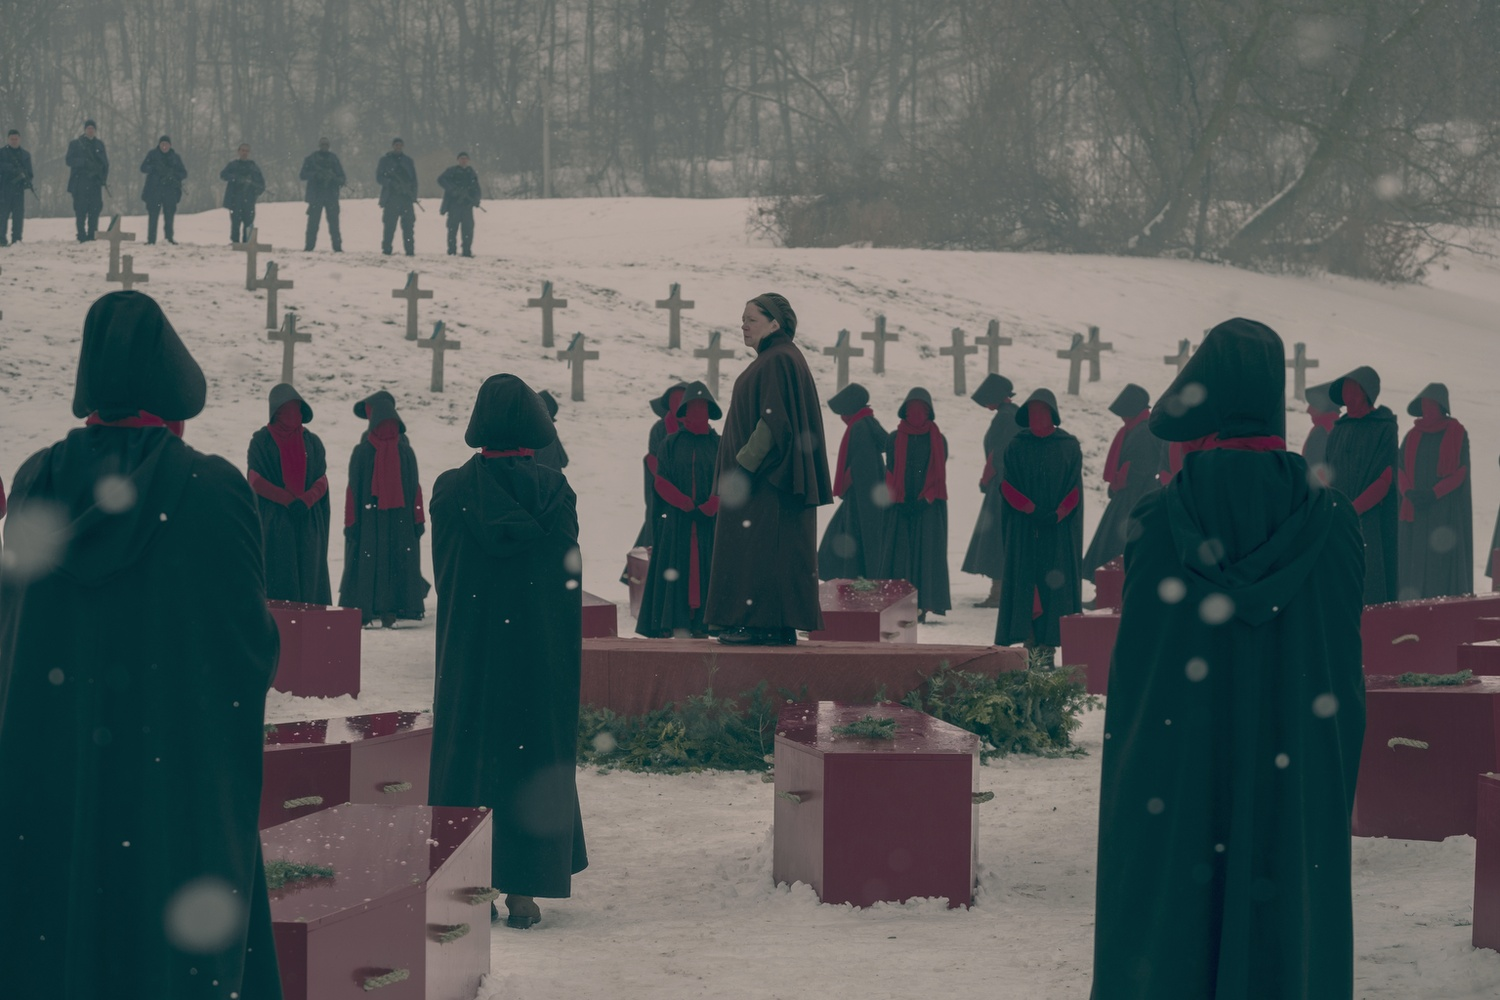 'The Handmaid's Tale': 'After'